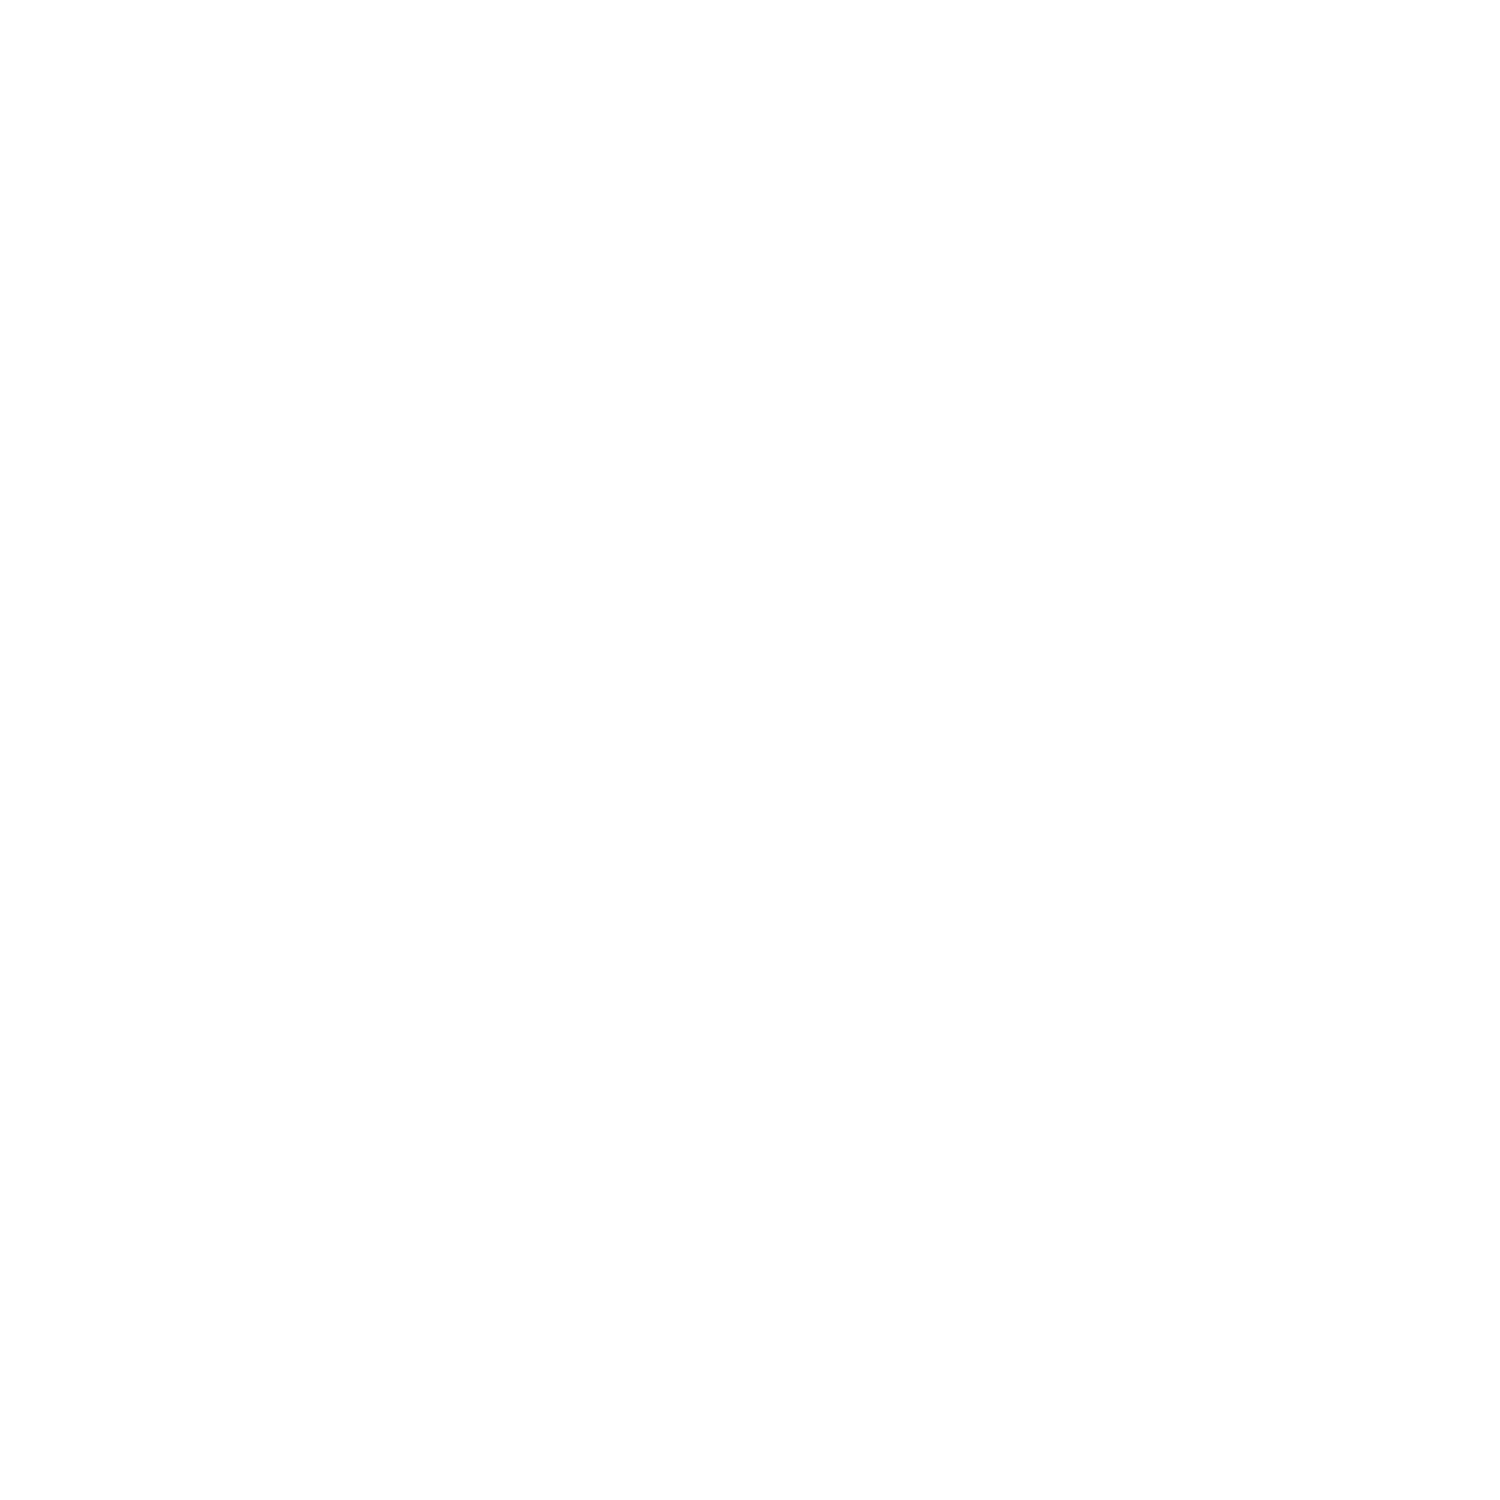 Central Virginia Fashion Week